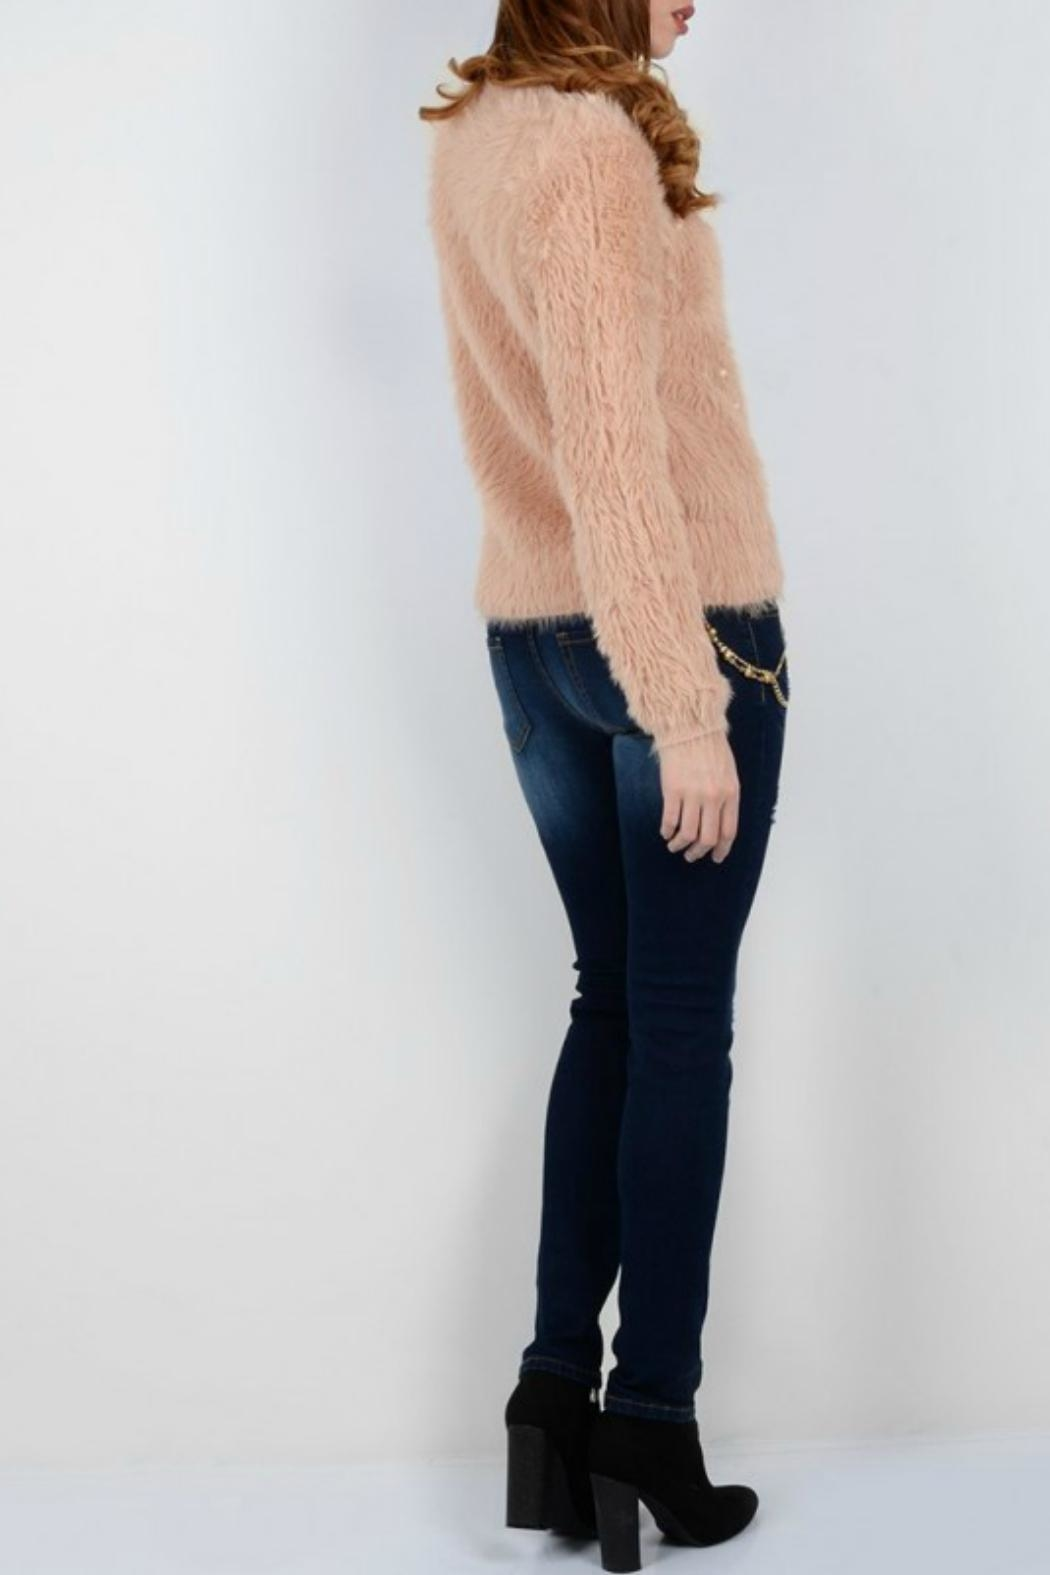 Molly Bracken Pearl Detailed  Sweater - Front Full Image